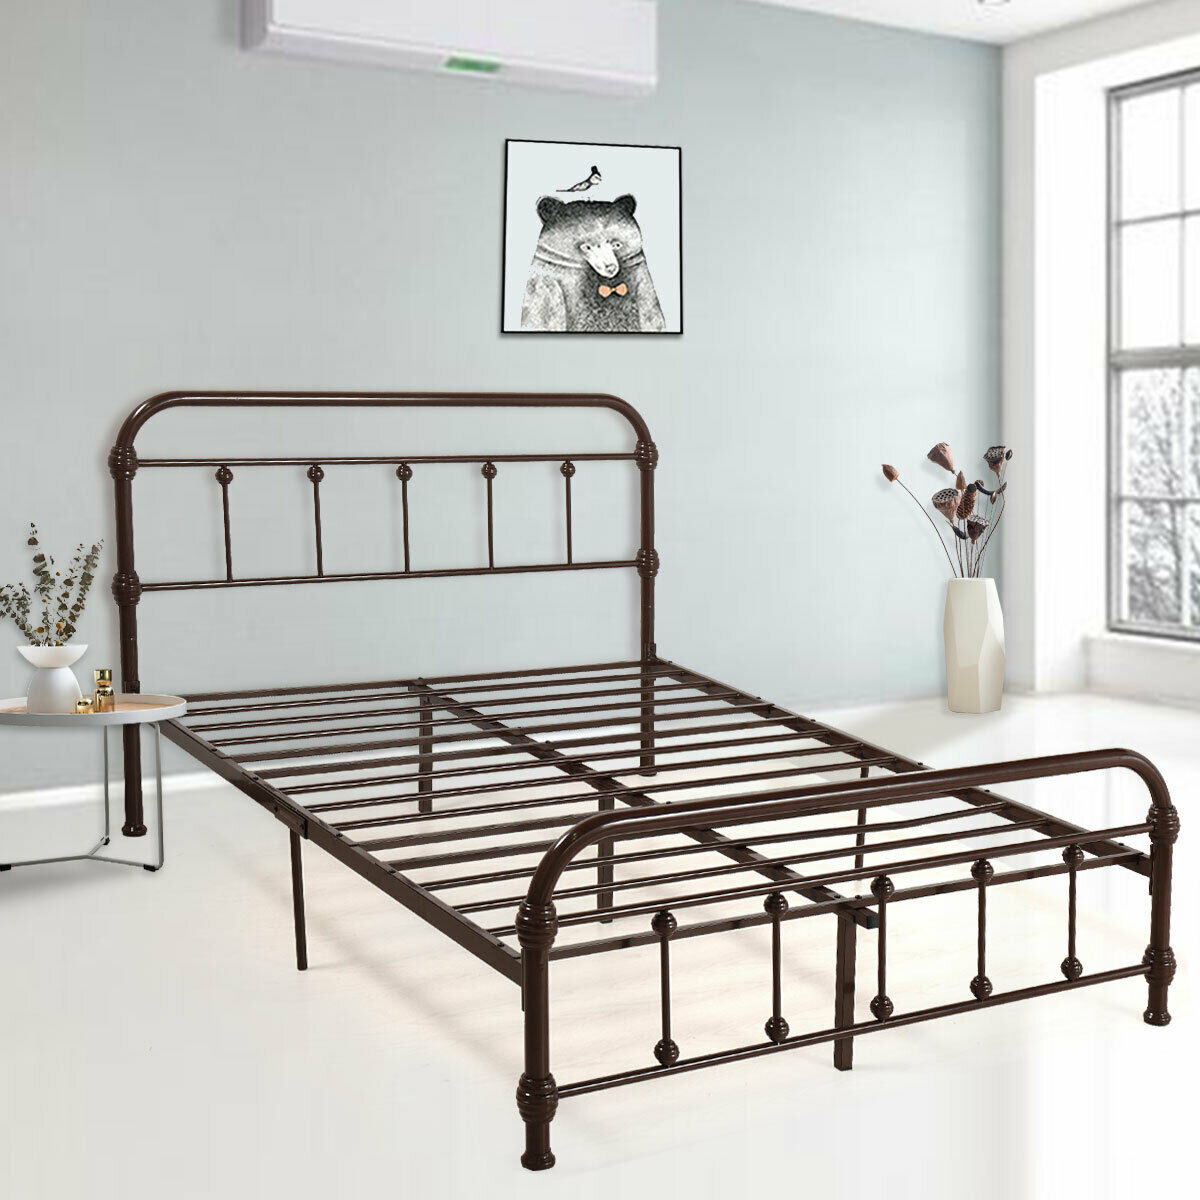 Miraculous Metal Bed Full Size Platform Bed Frame Bedroom Furniture W Headboard Footboard Beutiful Home Inspiration Truamahrainfo